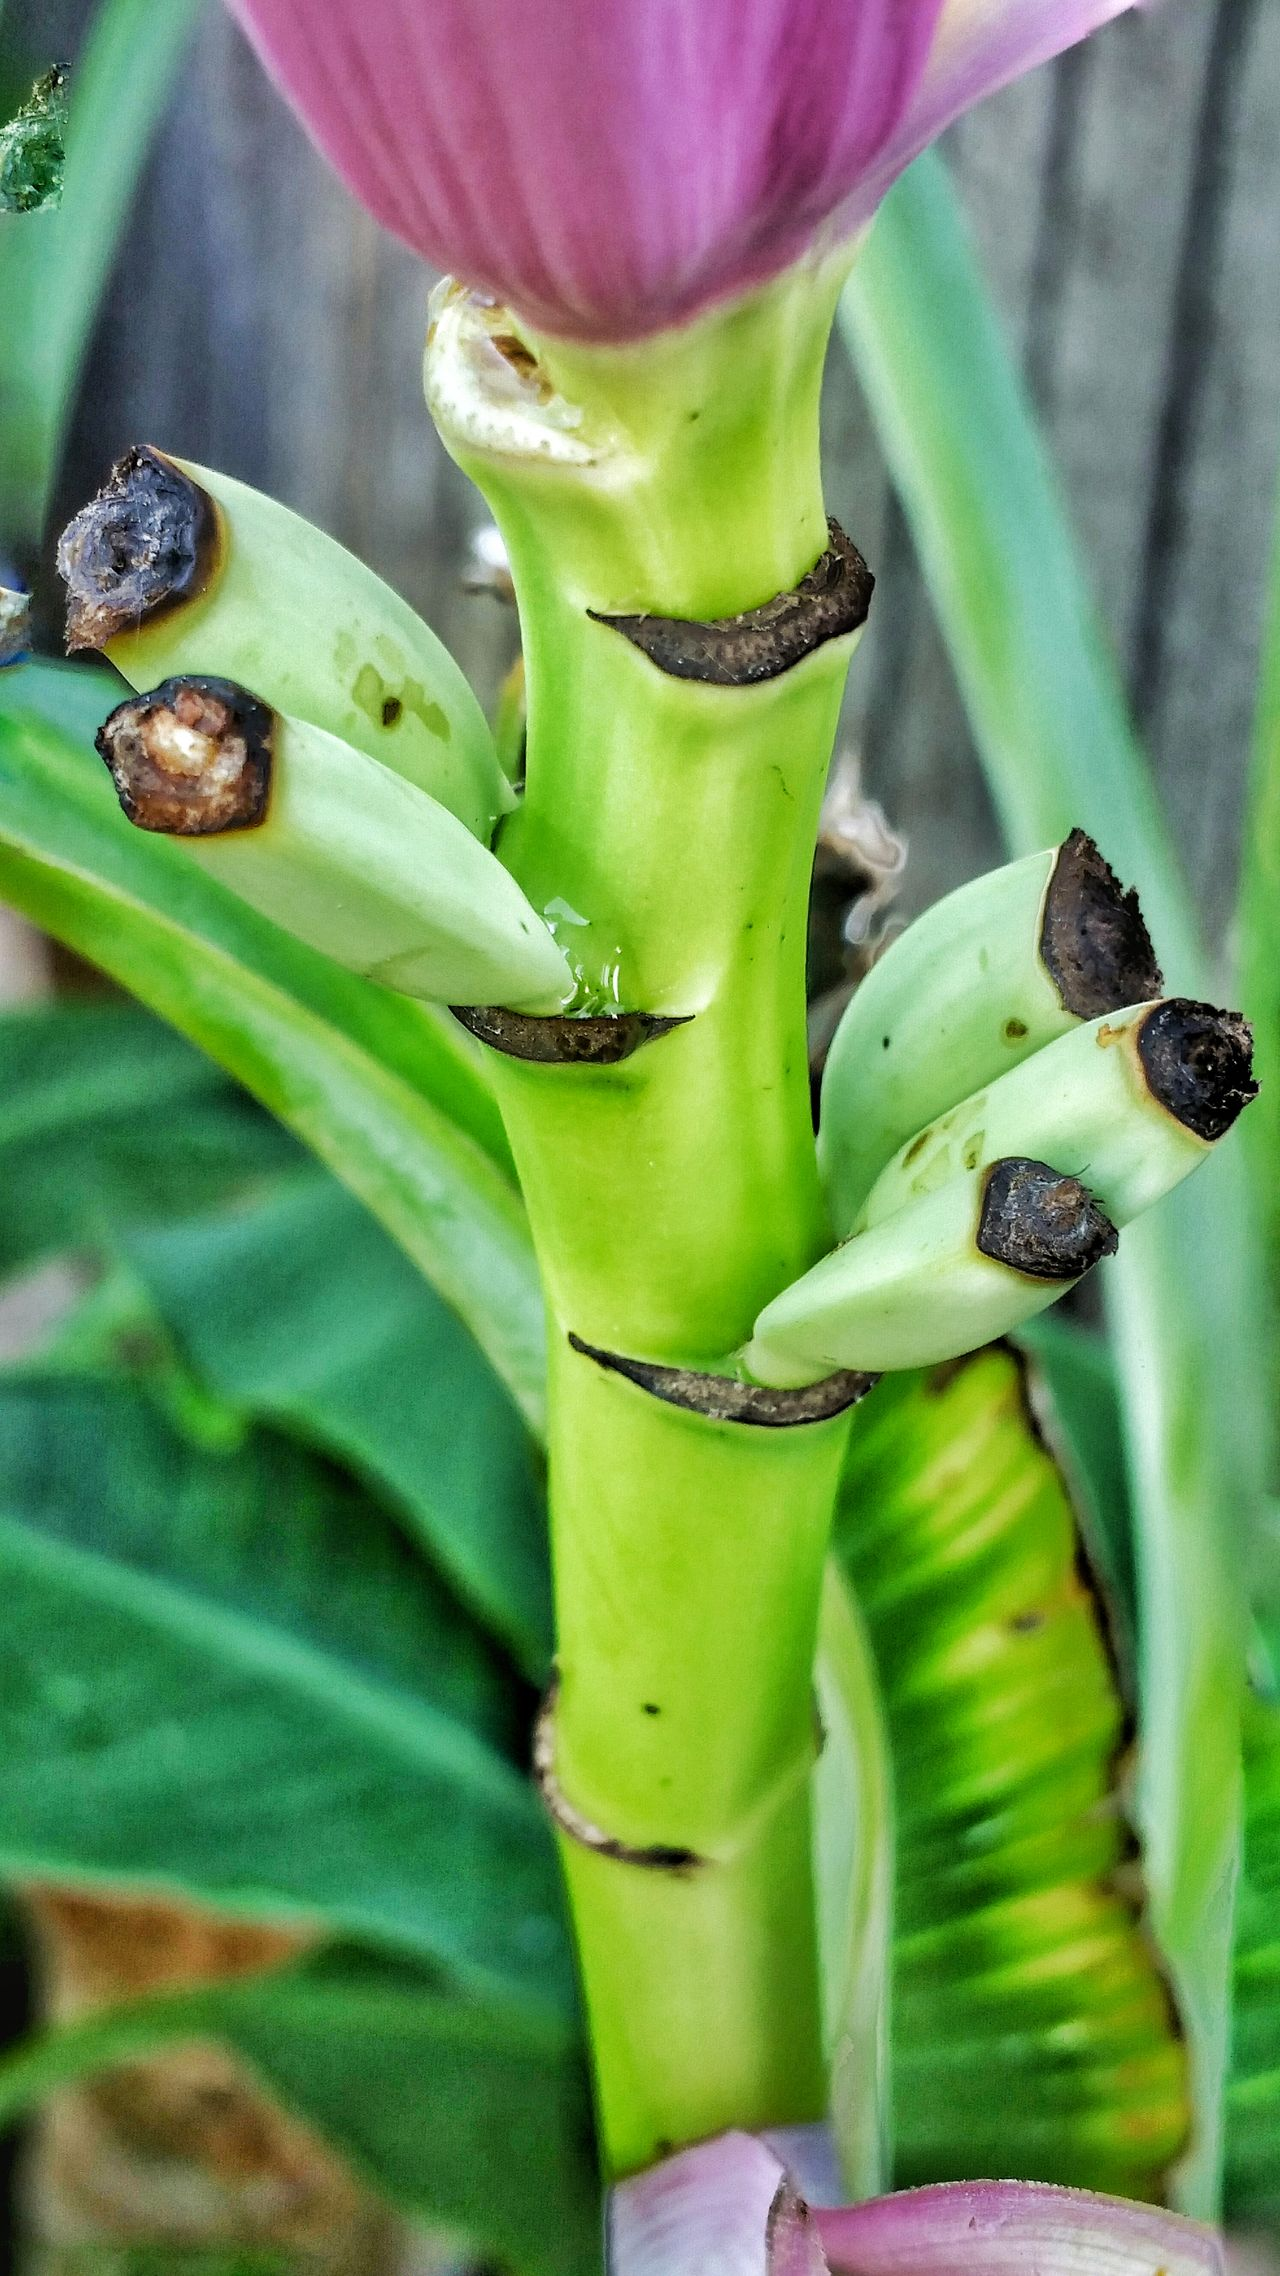 Baby Bananas Banana Tree Little Bananas New Fruit Tropical Fruits Tropical Plants Tropical Flowers Green Bananas Ripening Fruit Fruit On The Tree Stalk Of Bananas Banana Stalk Fruit Tree Plants Plants Collection Food Porn Food Photography Nature Natures Diversities Mississippi  Health Food New Fruit Fruits Banana Flower Tropical Climate